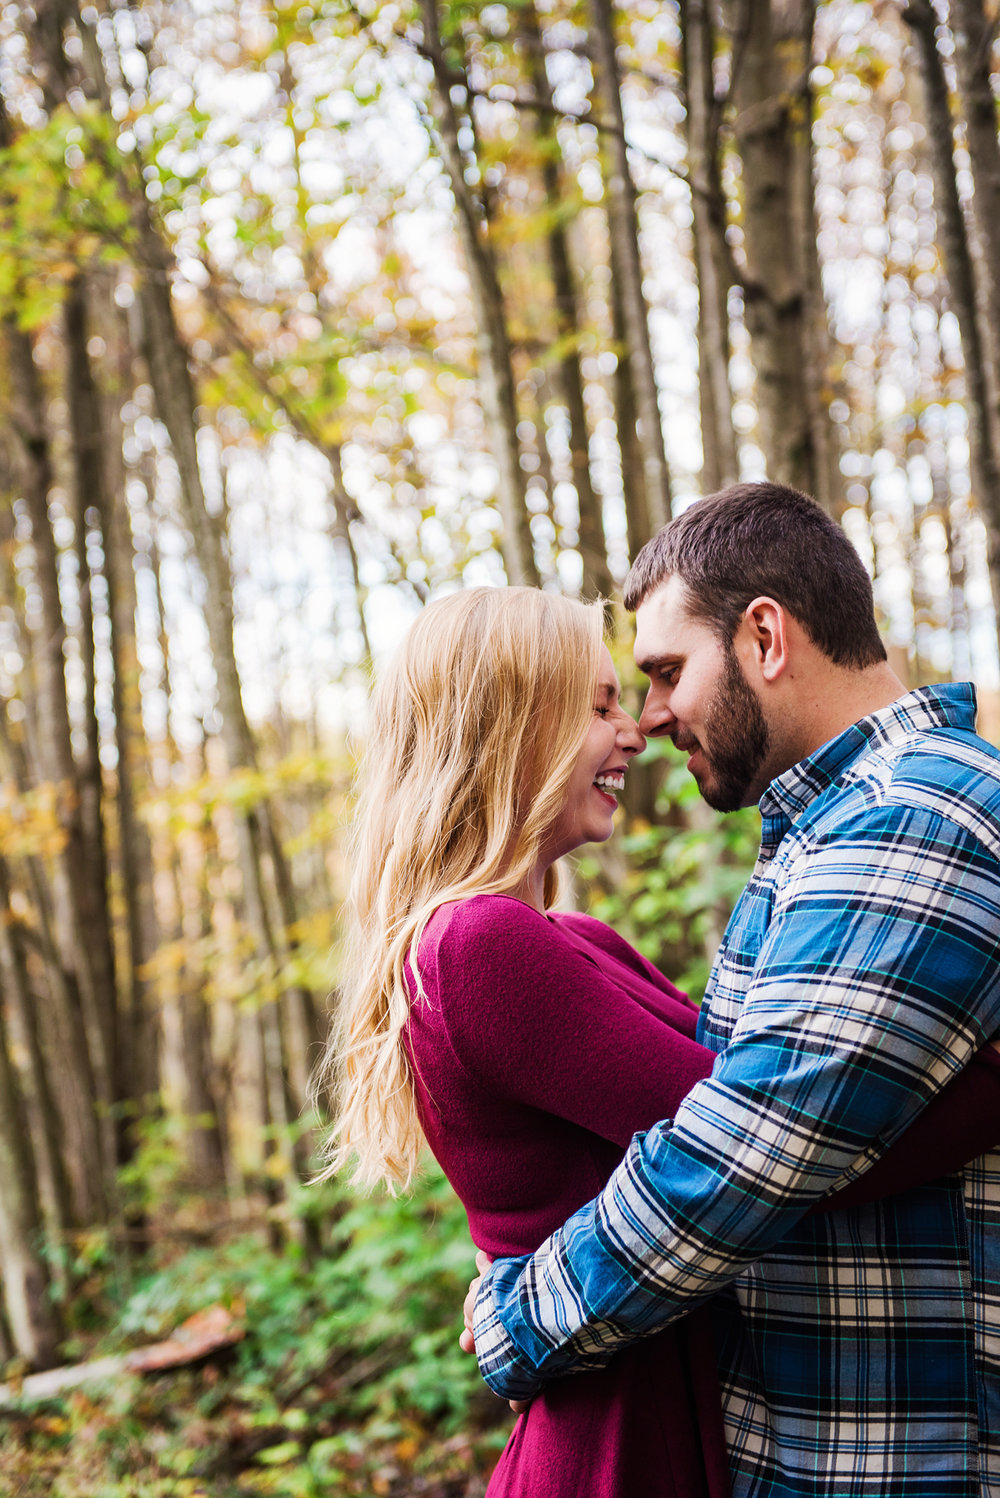 Cincinnatus_Central_NY_Engagement_Session_JILL_STUDIO_Rochester_NY_Photographer_DSC_9779.jpg